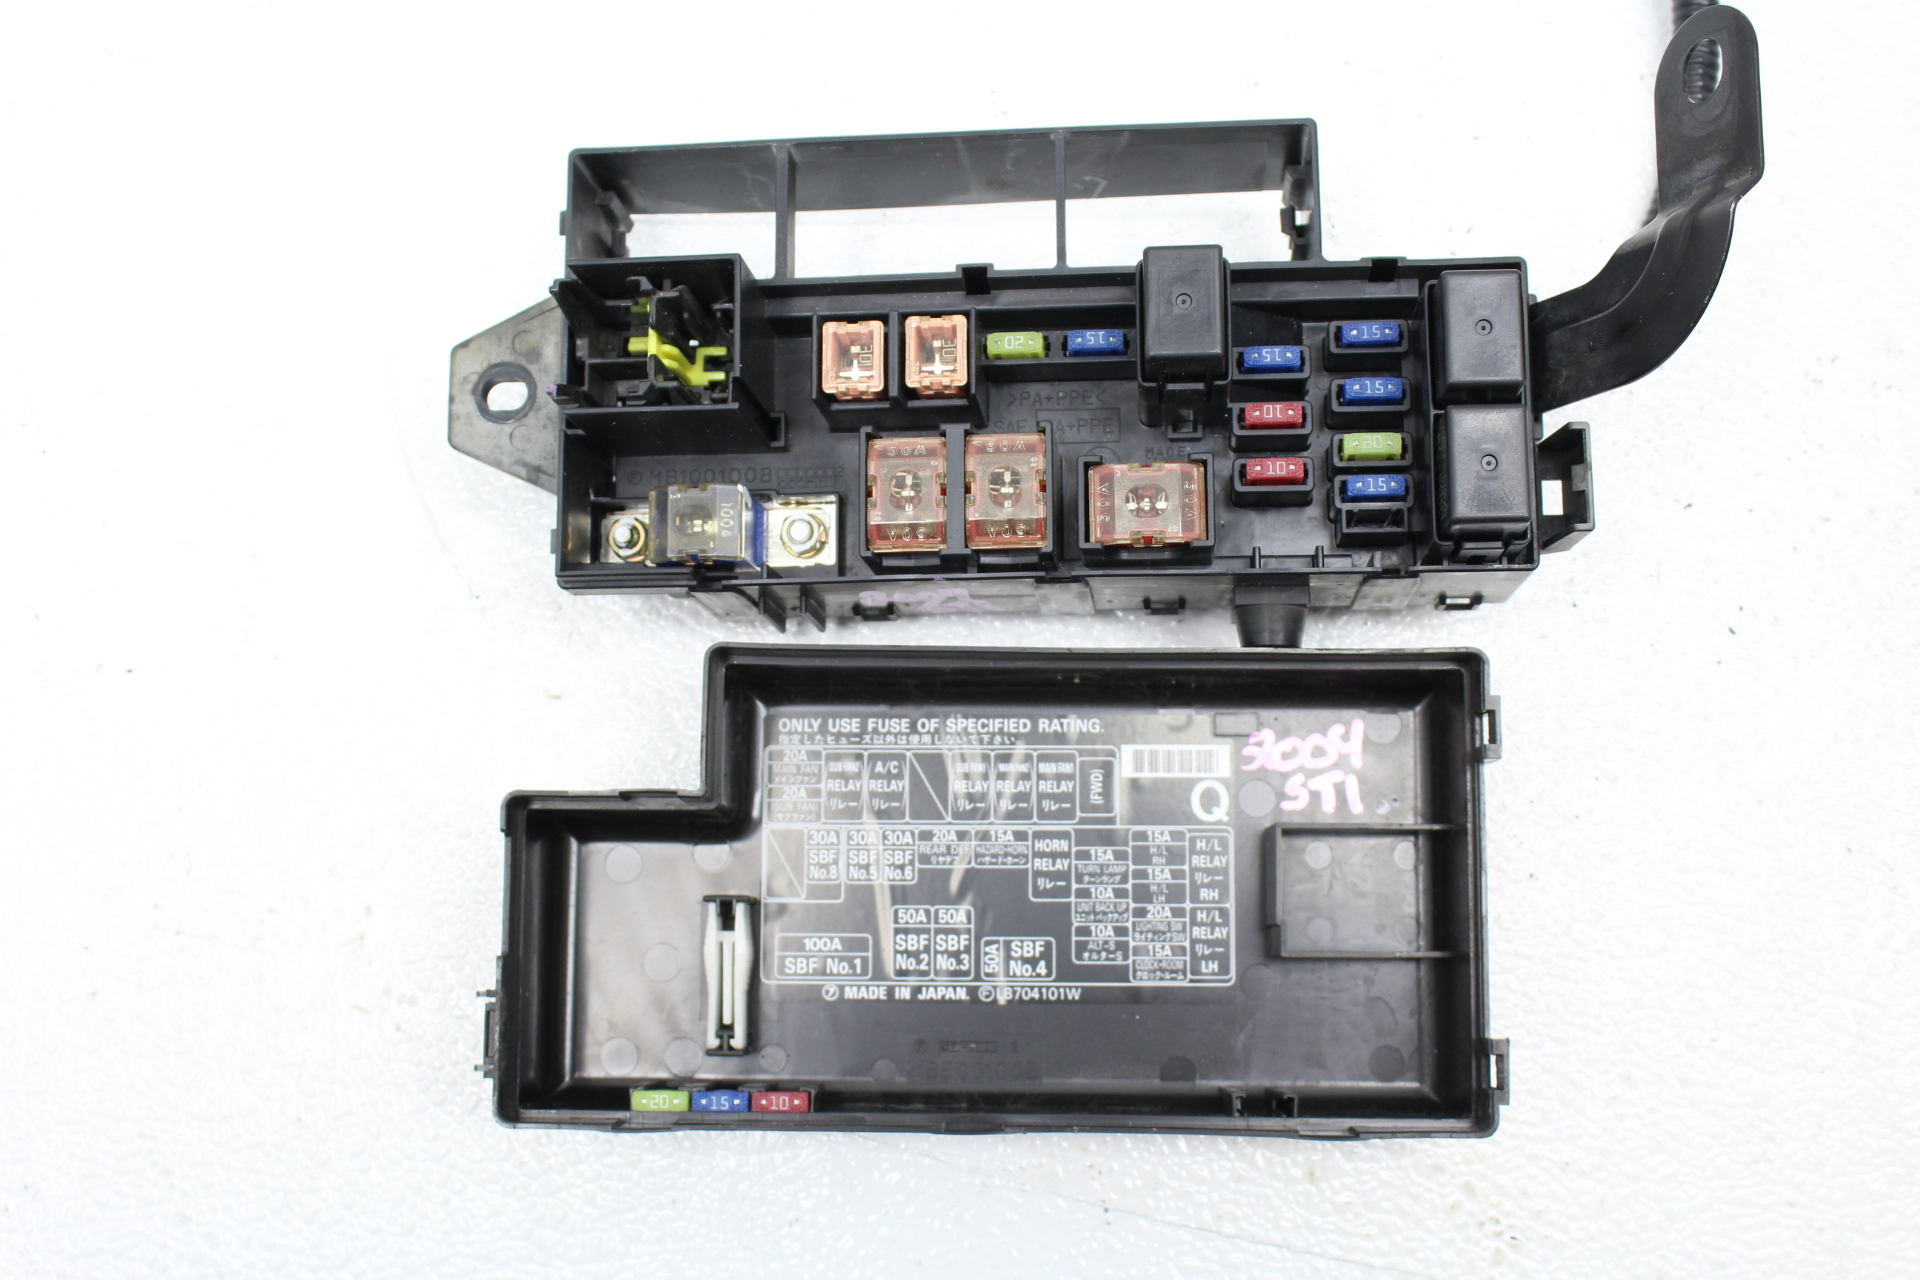 2005 Subaru Impreza Fuse Box Daily Update Wiring Diagram Engine Bay 2002 Wrx Sti